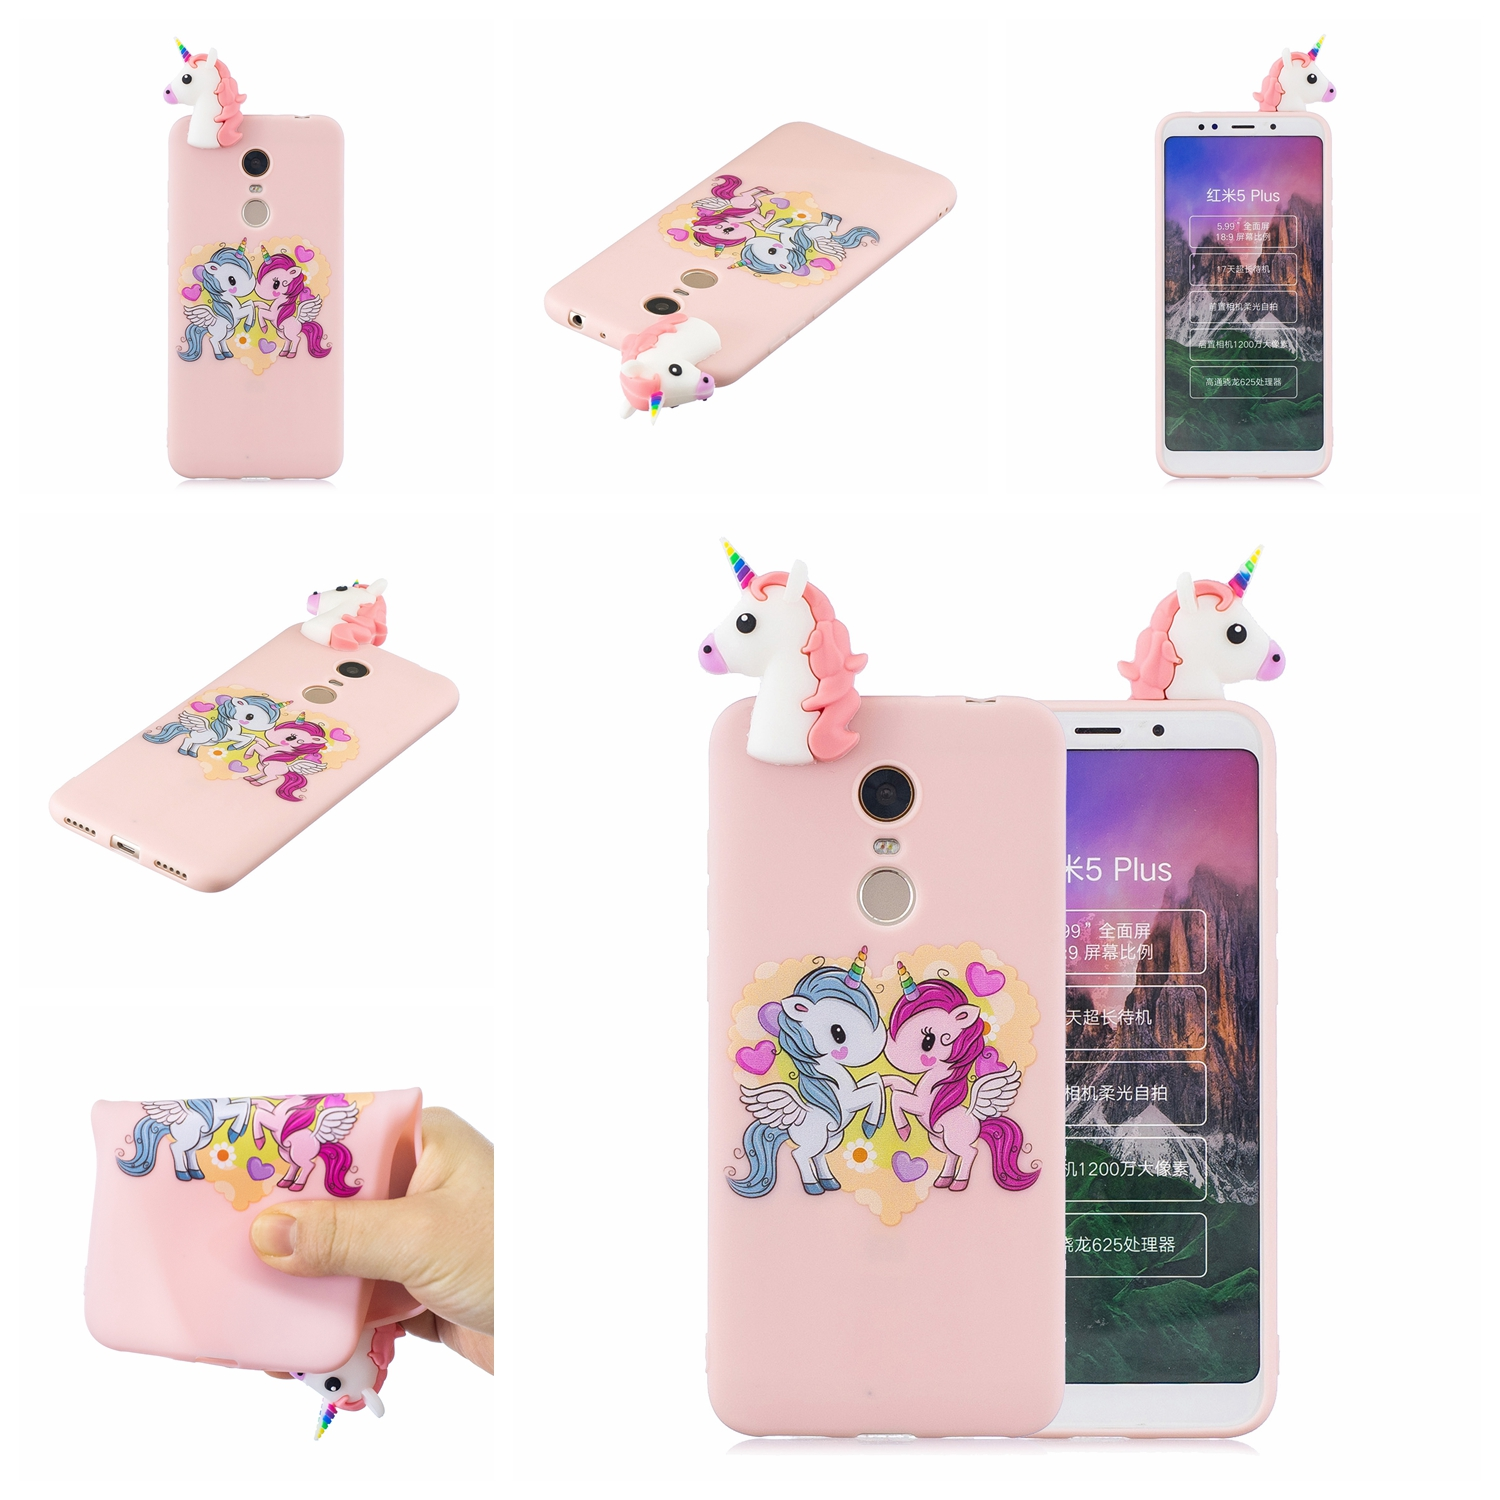 For XIAOMI Redmi 5 plus 3D Cartoon Lovely Coloured Painted Soft TPU Back Cover Non-slip Shockproof Full Protective Case Light pink